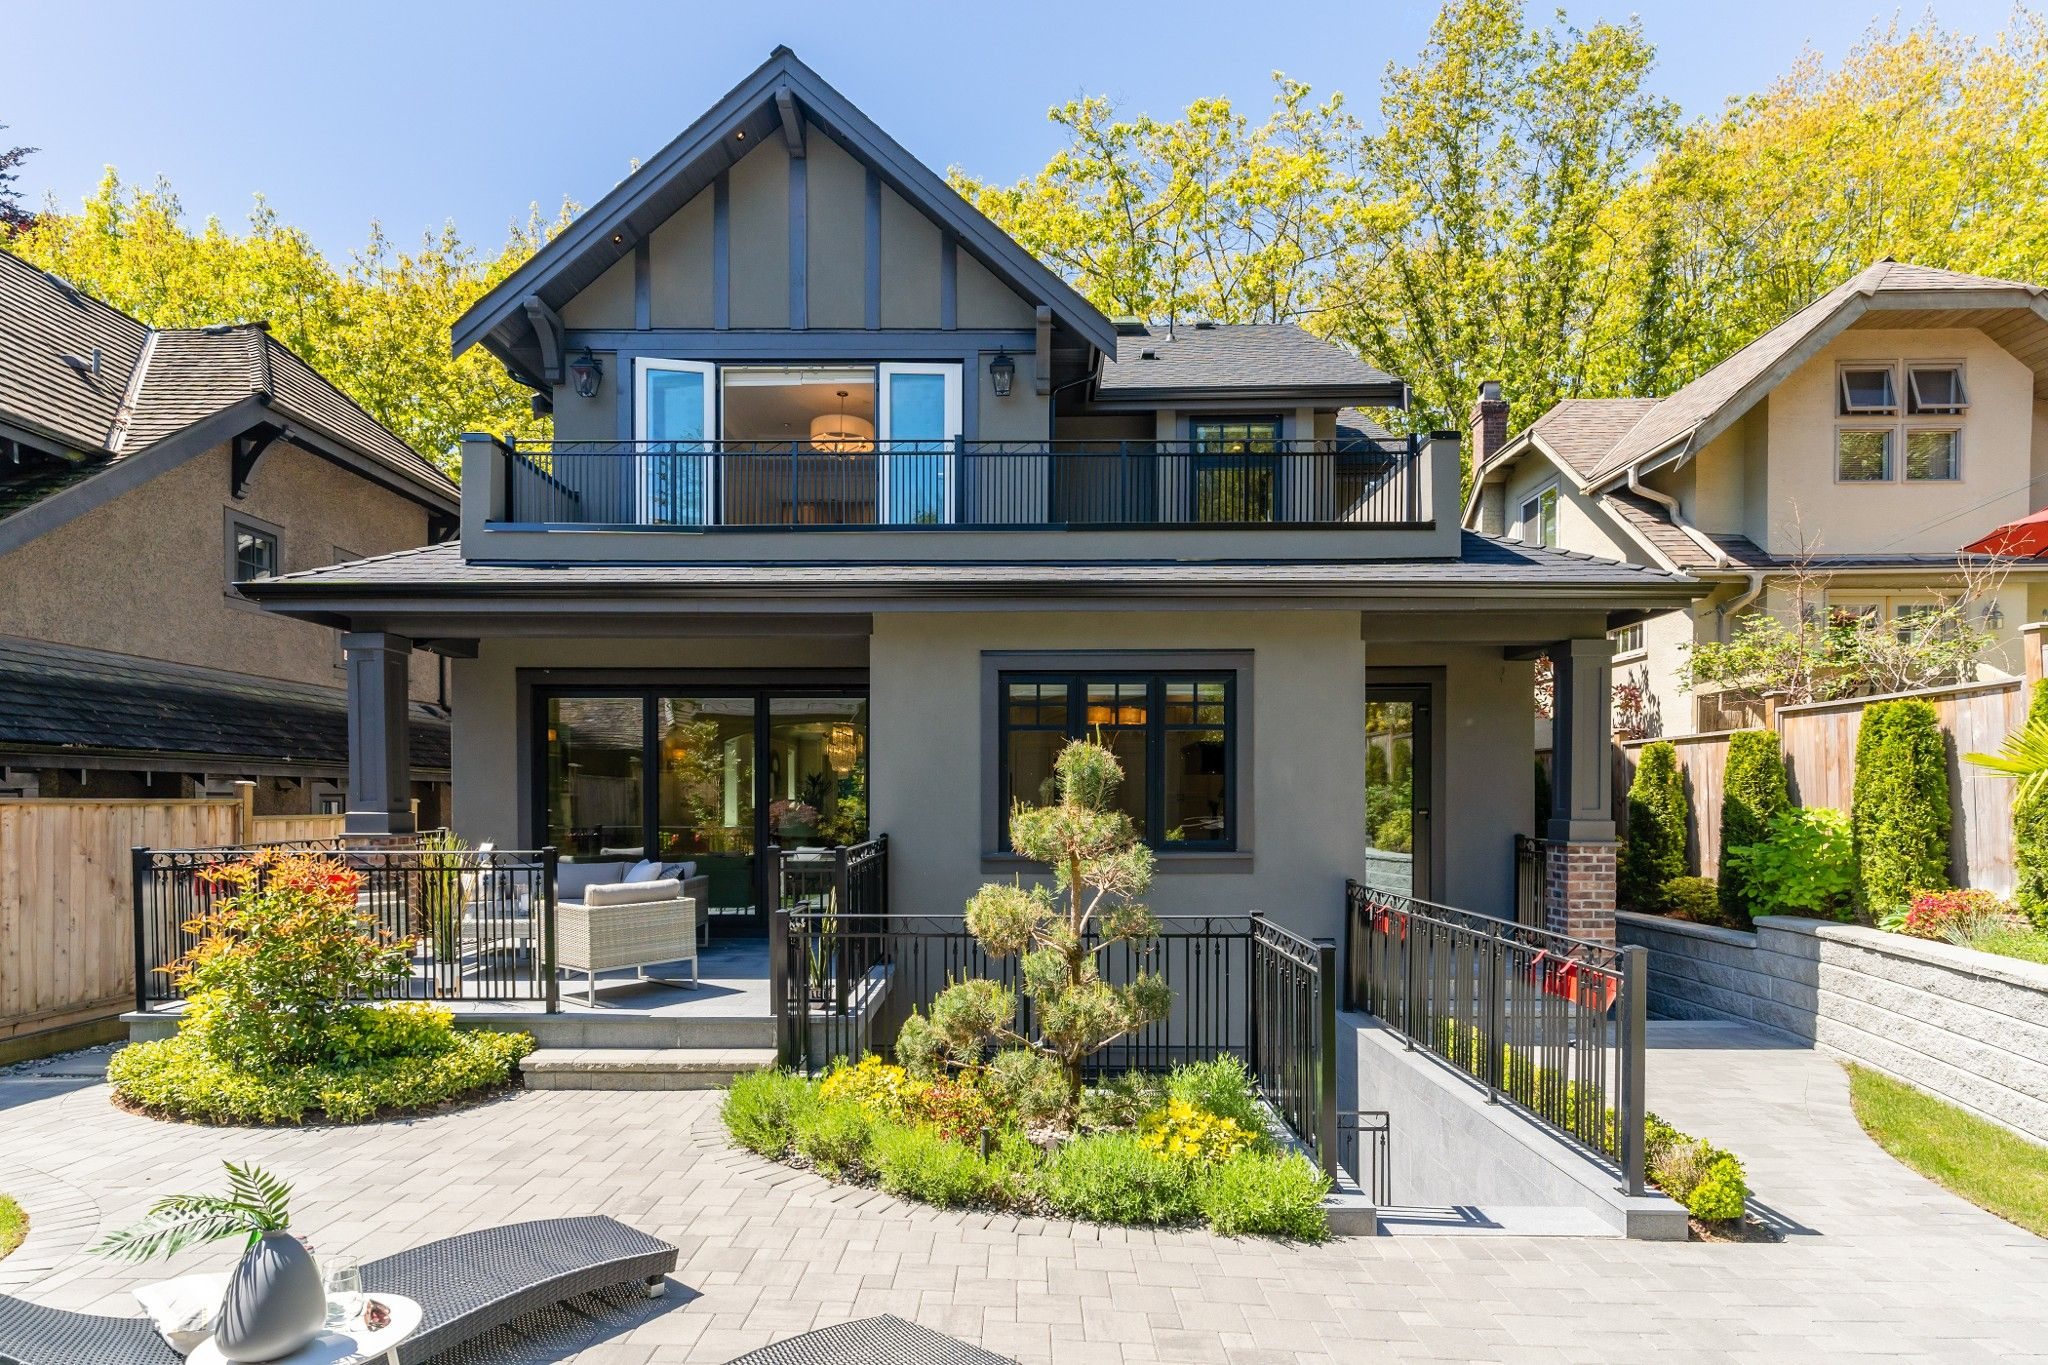 Photo 48: Photos: 5756 ALMA STREET in VANCOUVER: Southlands House for sale (Vancouver West)  : MLS®# R2588229